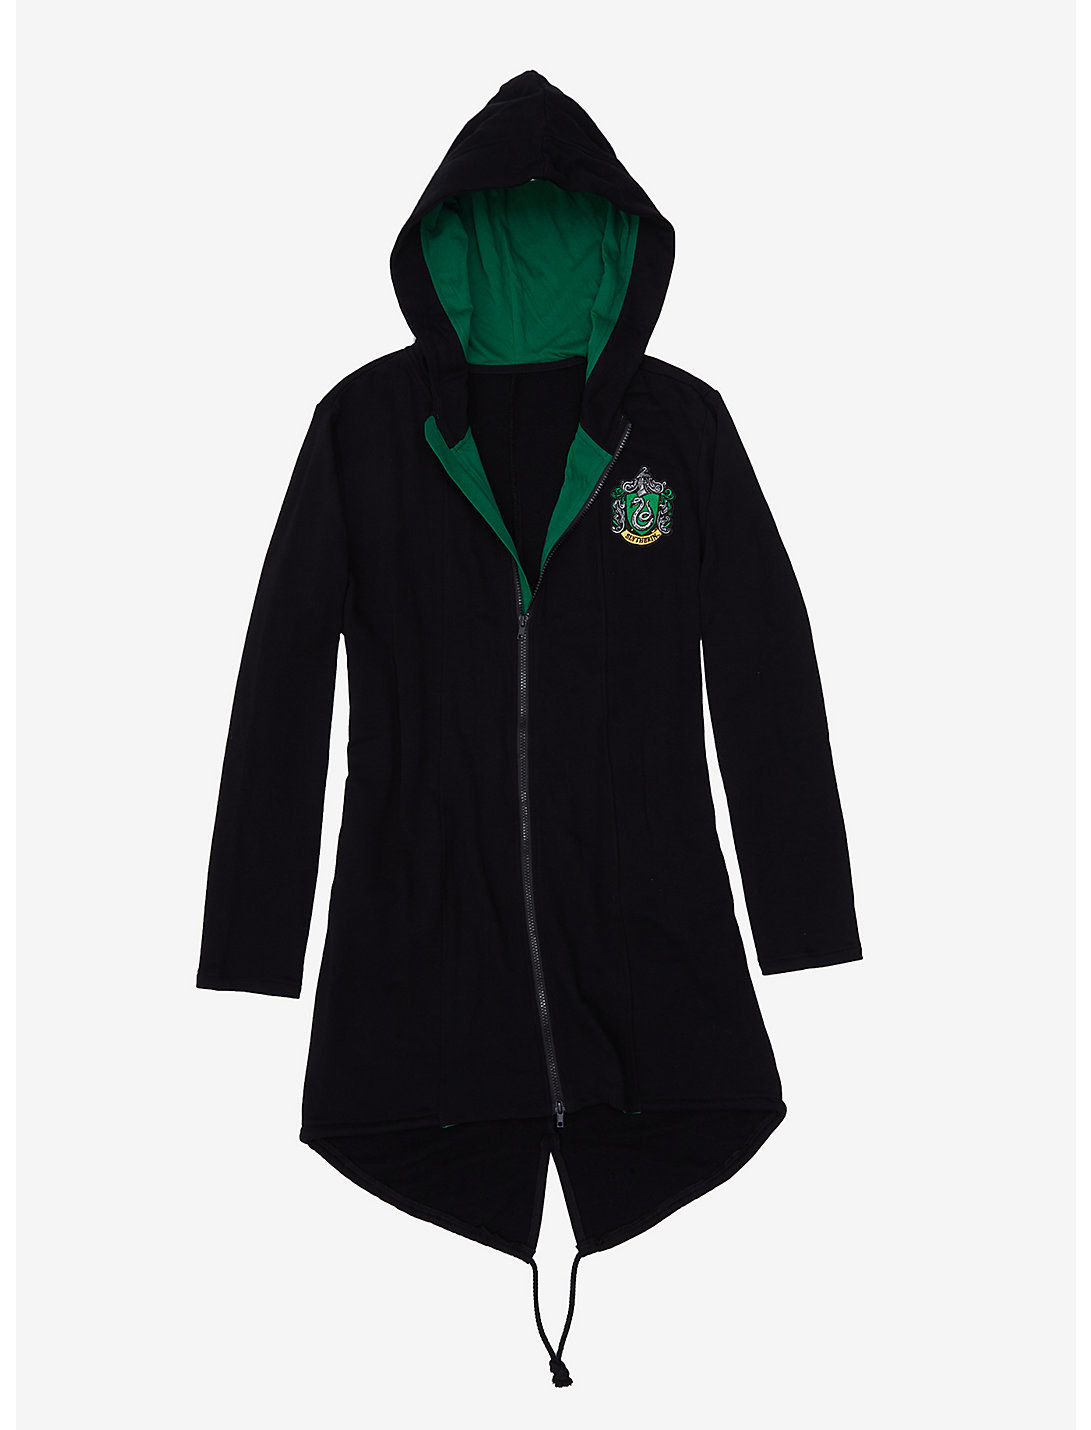 The black zip-up hoodie, which has a green lining